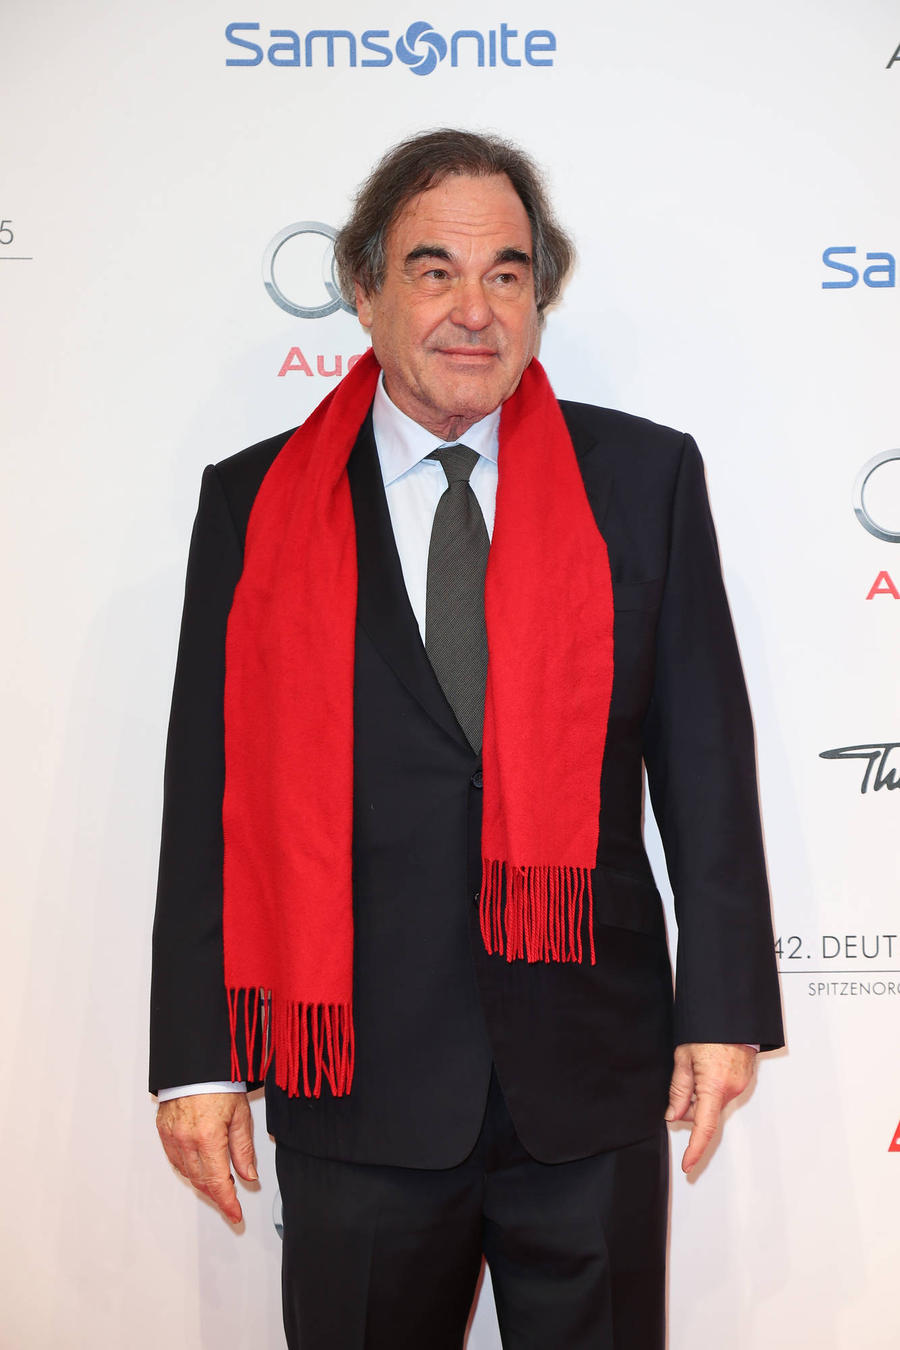 Oliver Stone Attacks Trump & Clinton For Avoiding Major Issues